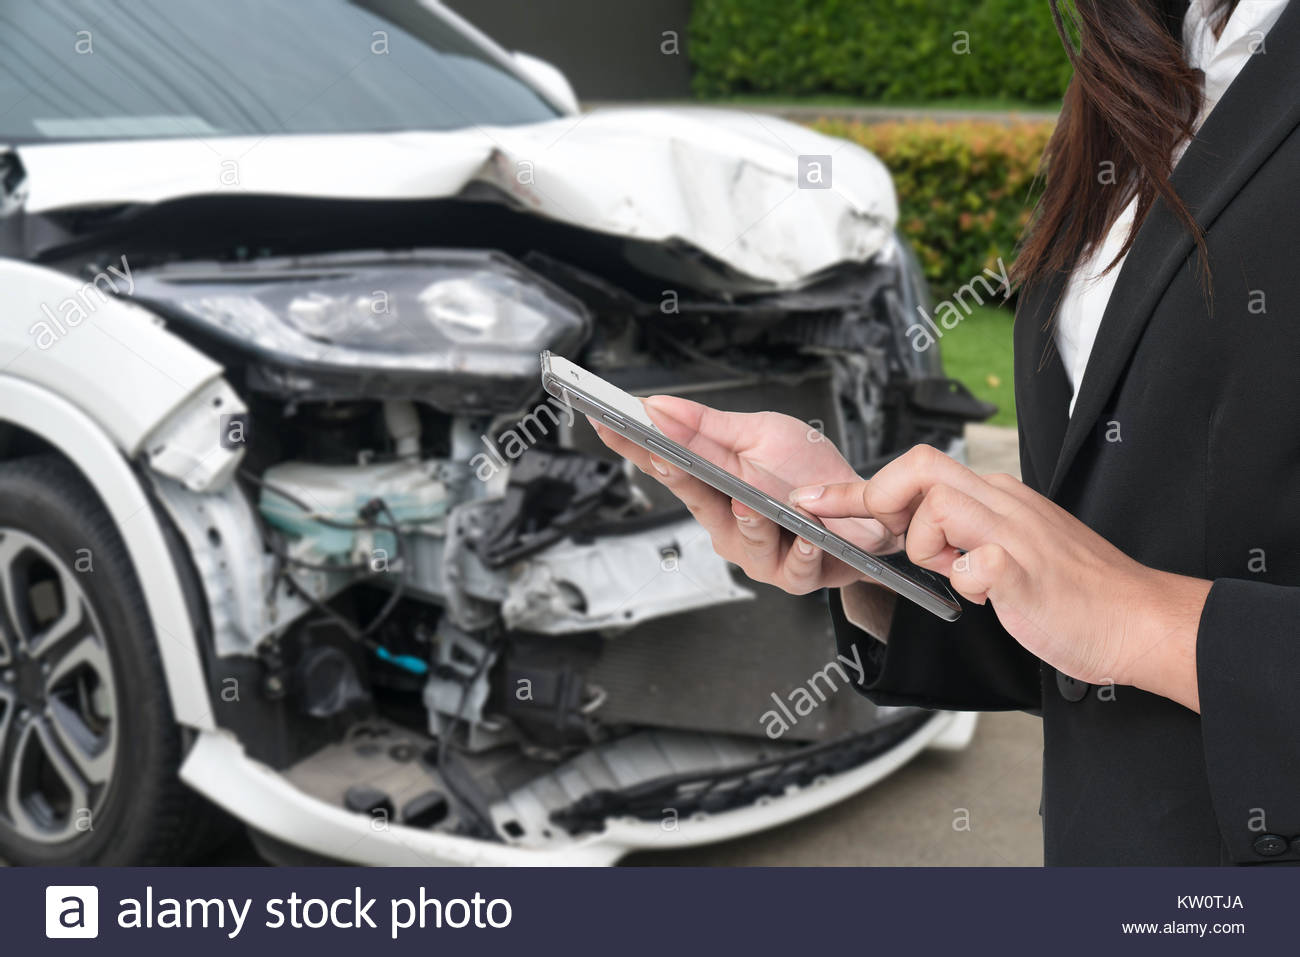 Insurance Agent Inspecting Damaged Car With Insurance Claim Form On Digital Tablet - Stock Image